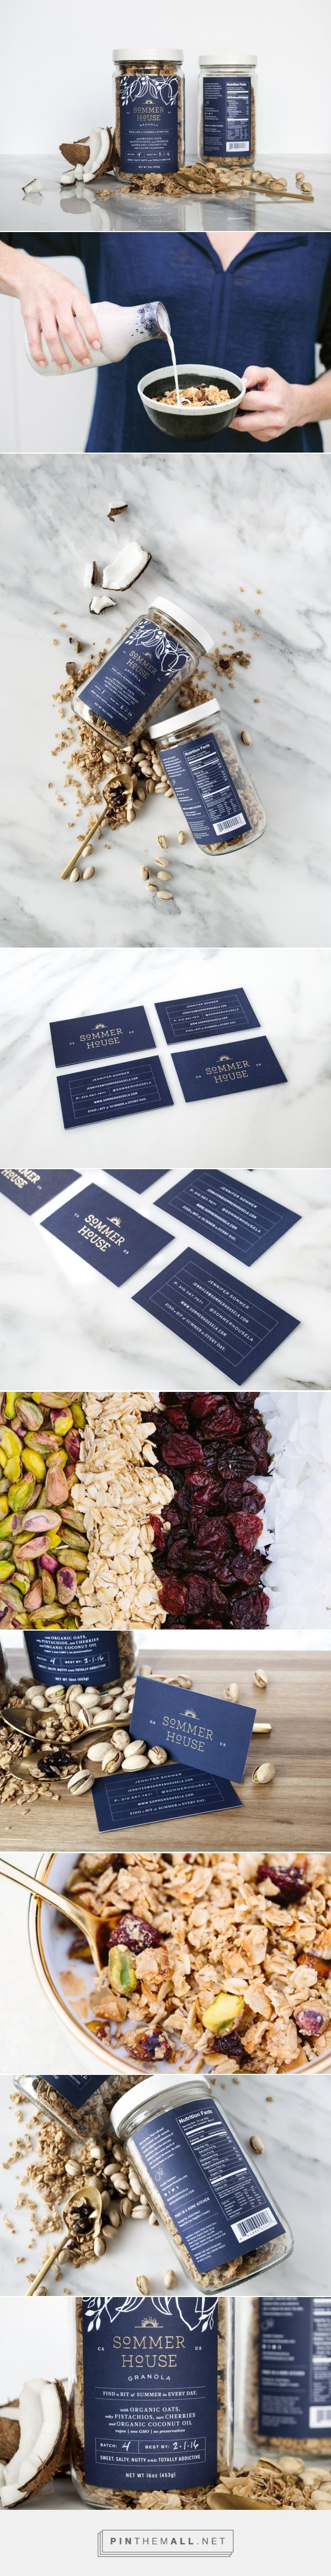 Sommer House Granola Branding and Packaging by Project M Plus | Fivestar Branding Agency – Design and Branding Agency & Curated Inspiration Gallery